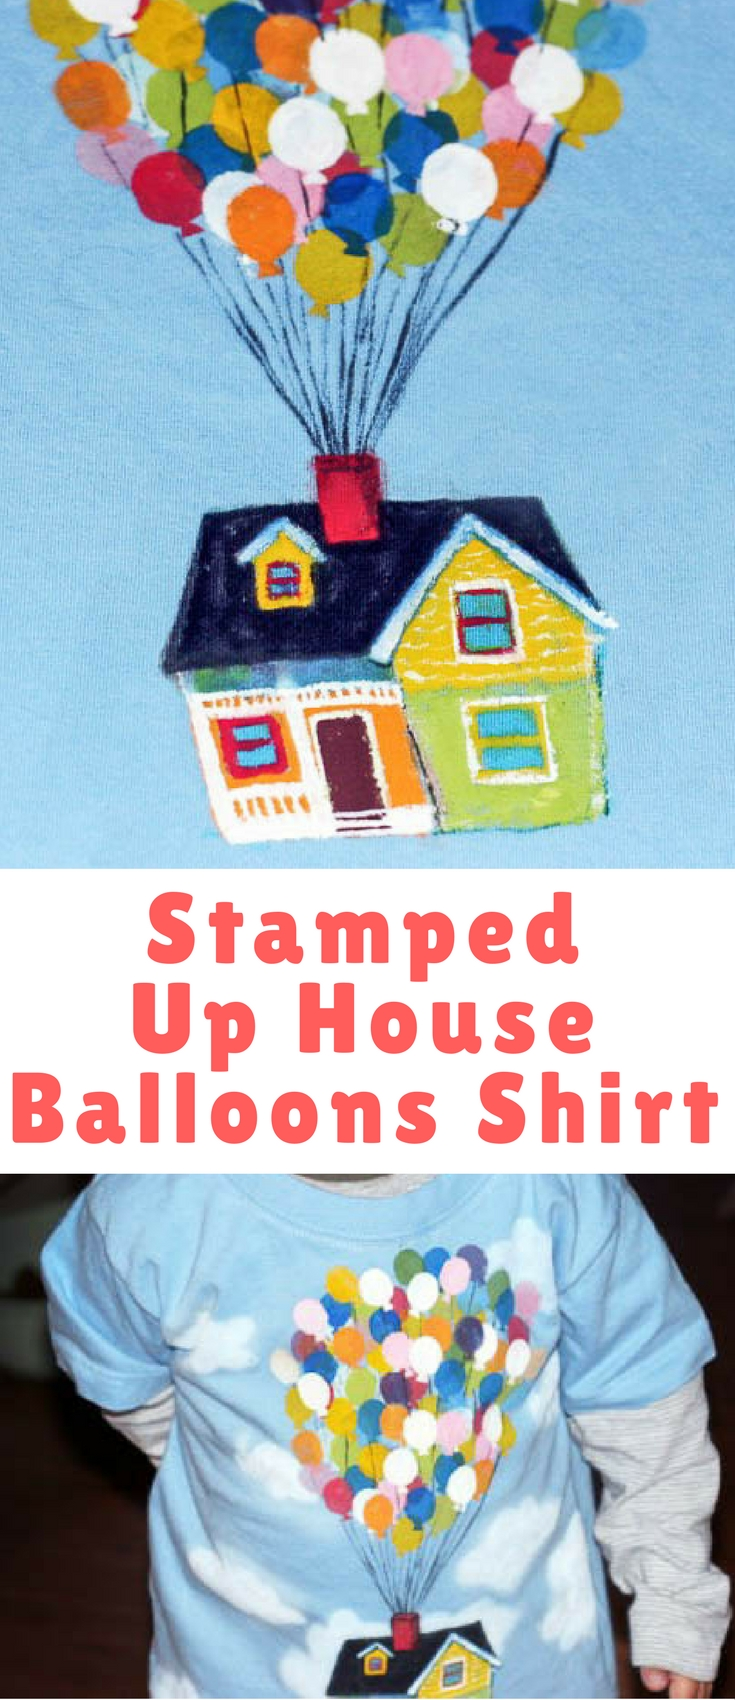 This fun Up house balloons shirt is made with homemade craft foam stamps, and is so easy even a toddler can help you make it.